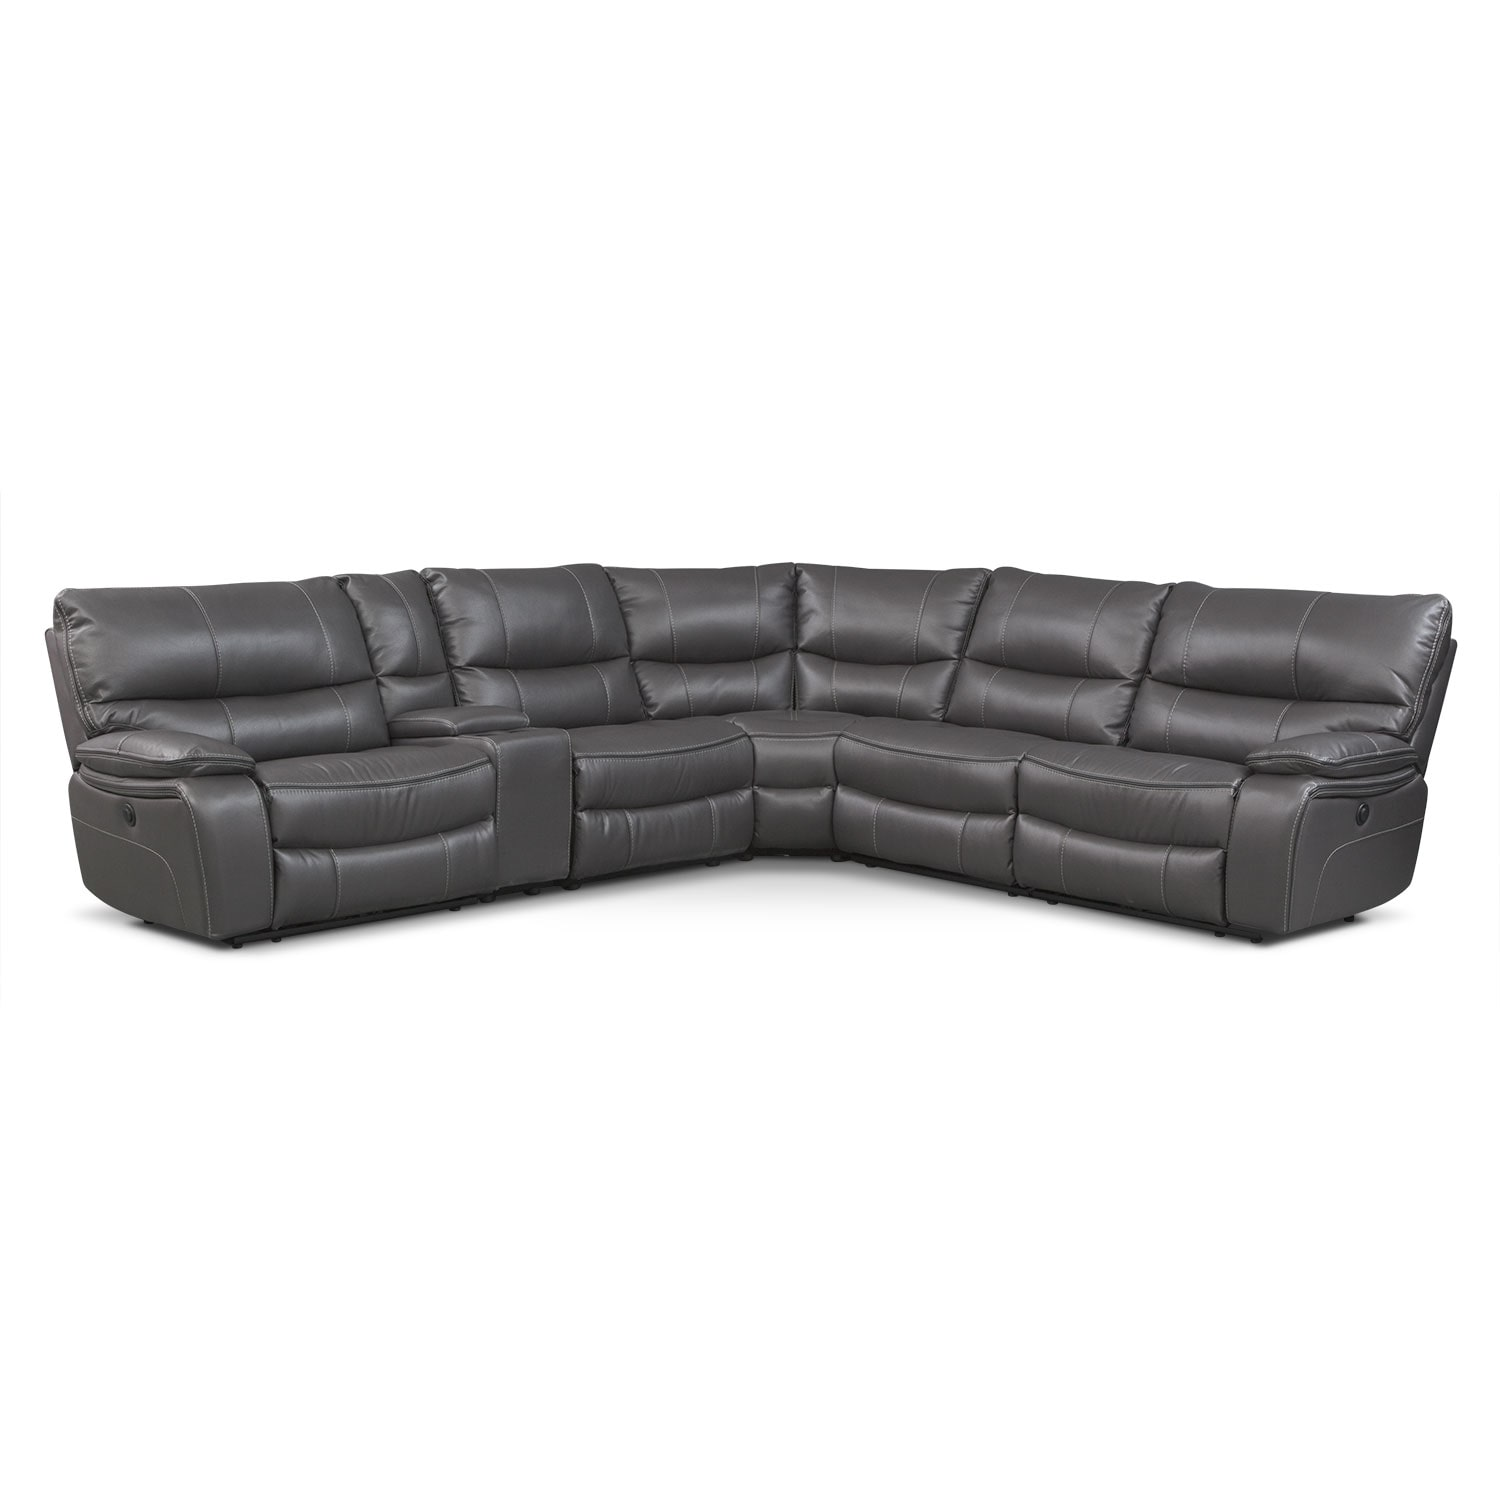 Orlando 6-Piece Power Reclining Sectional with 1 Stationary Chair - Gray